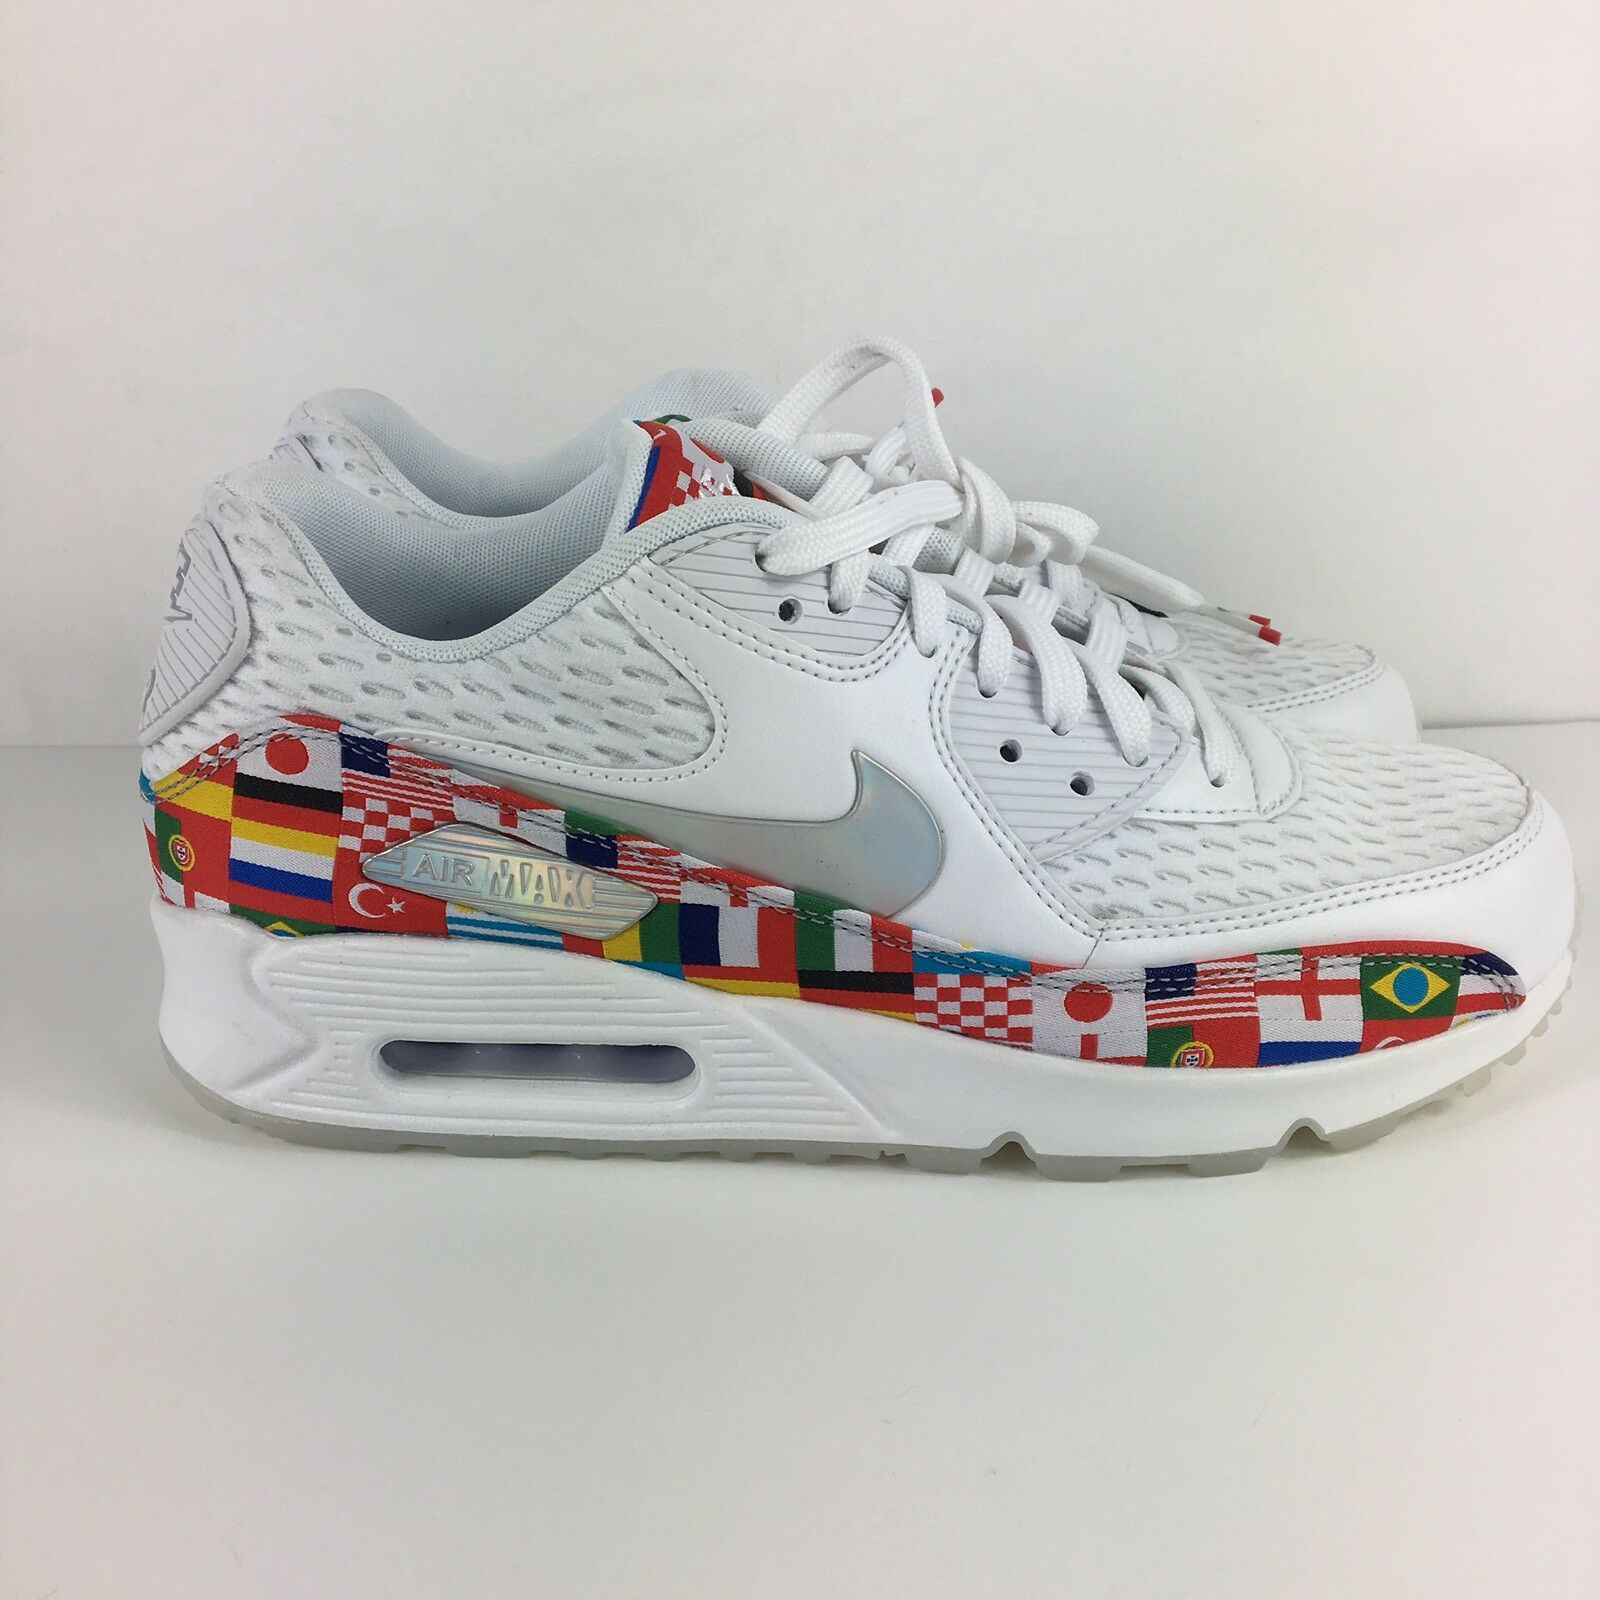 Nike Air Max 90 FIFA World Cup International Flag Size 8 In Men's 9.5 in Women's